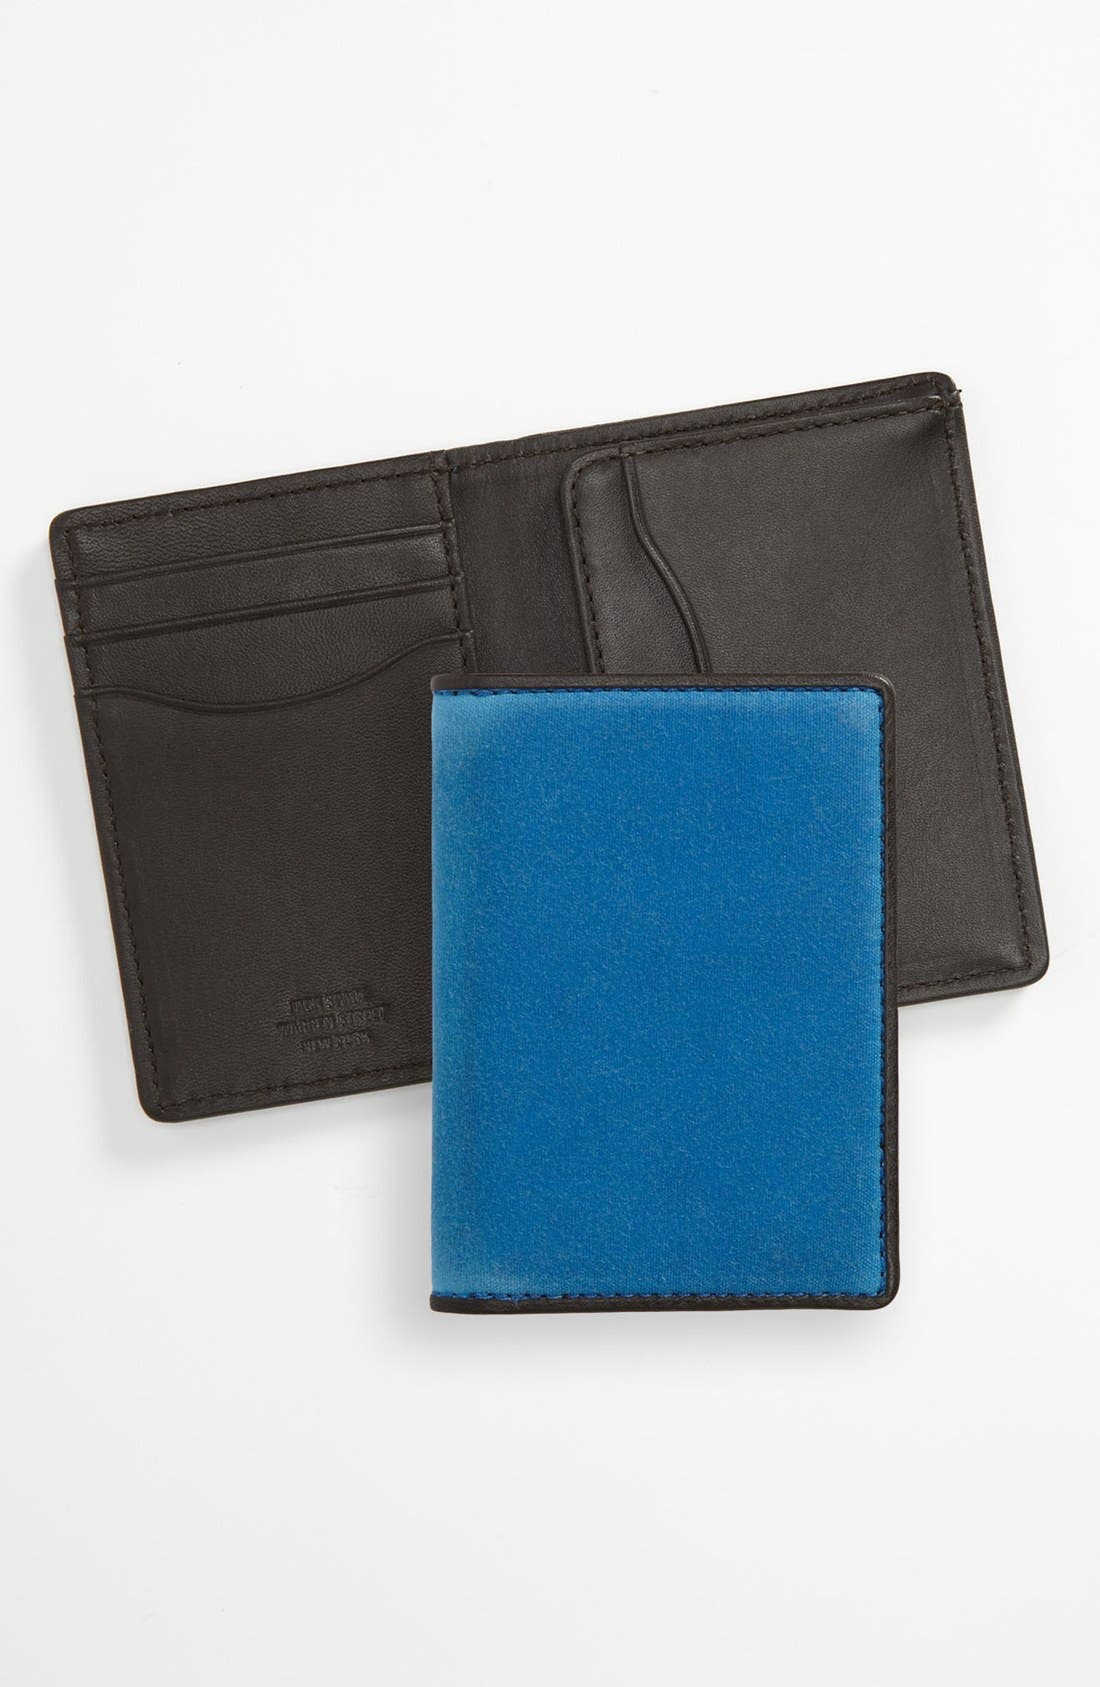 Alternate Image 1 Selected - Jack Spade 'Waxwear' Vertical Wallet